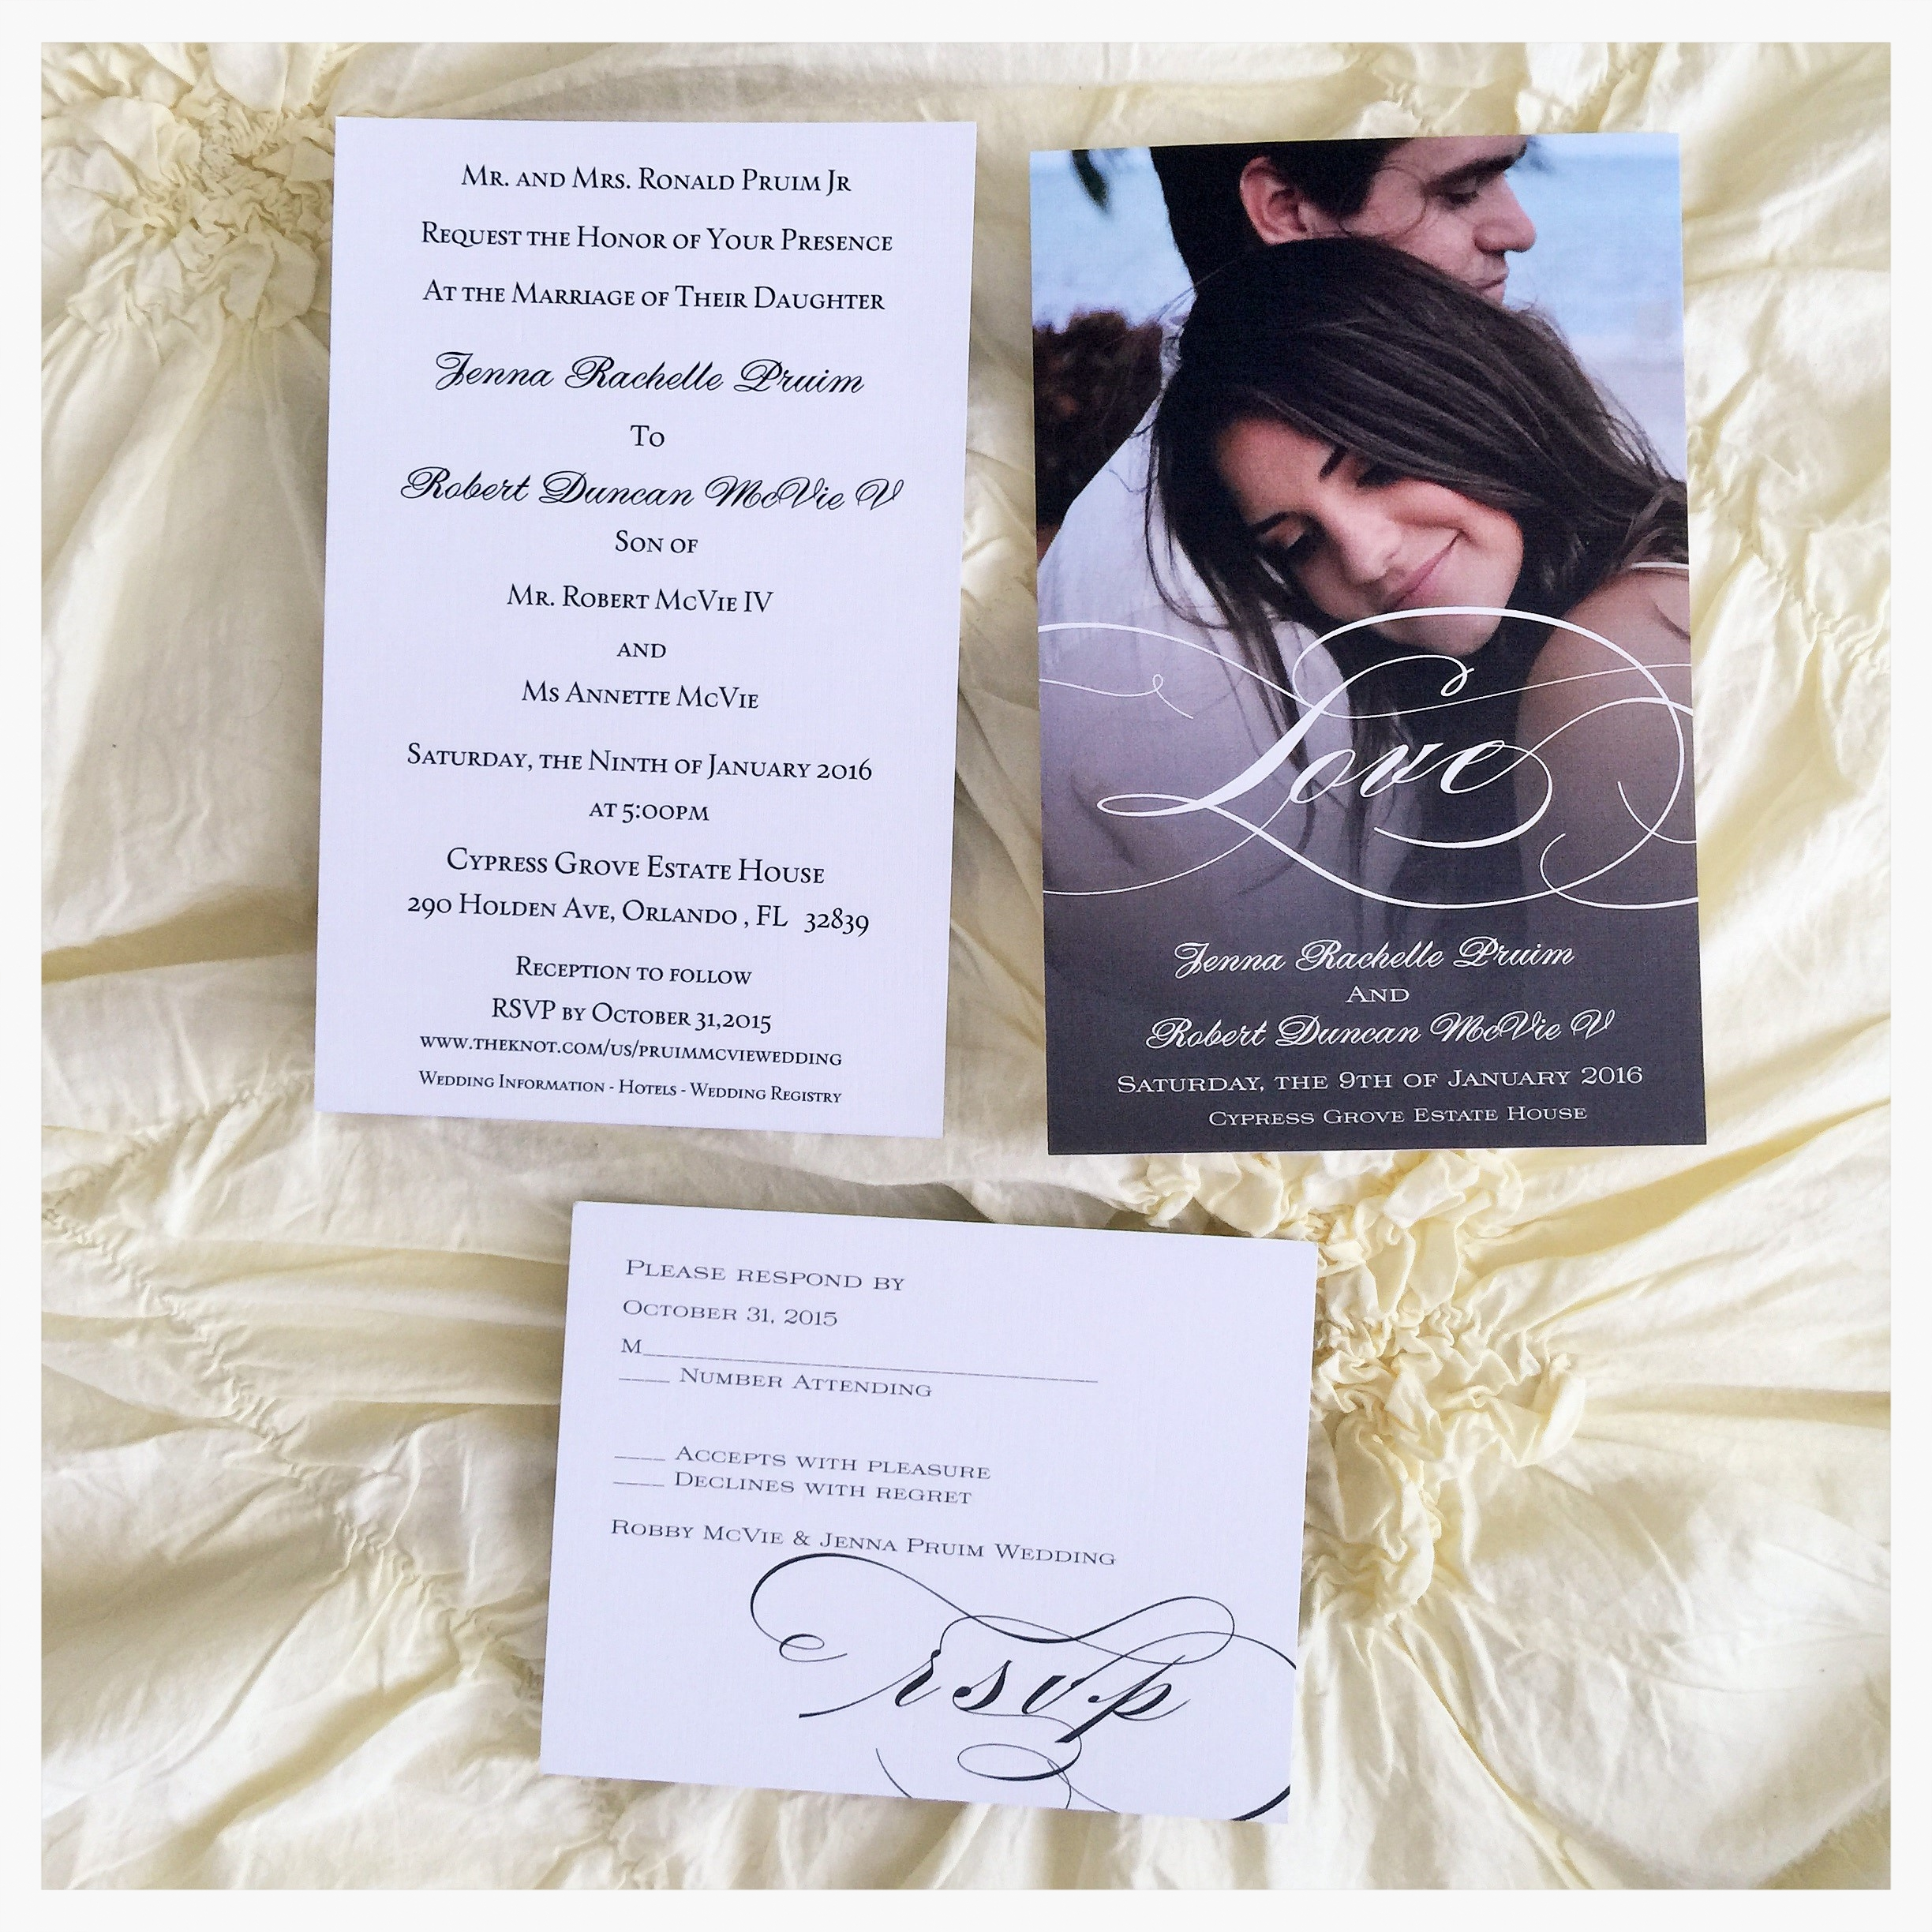 ** The invitation is two sided. We chose our invitations to be printed out on linen paper to give it more of an elegant feel.